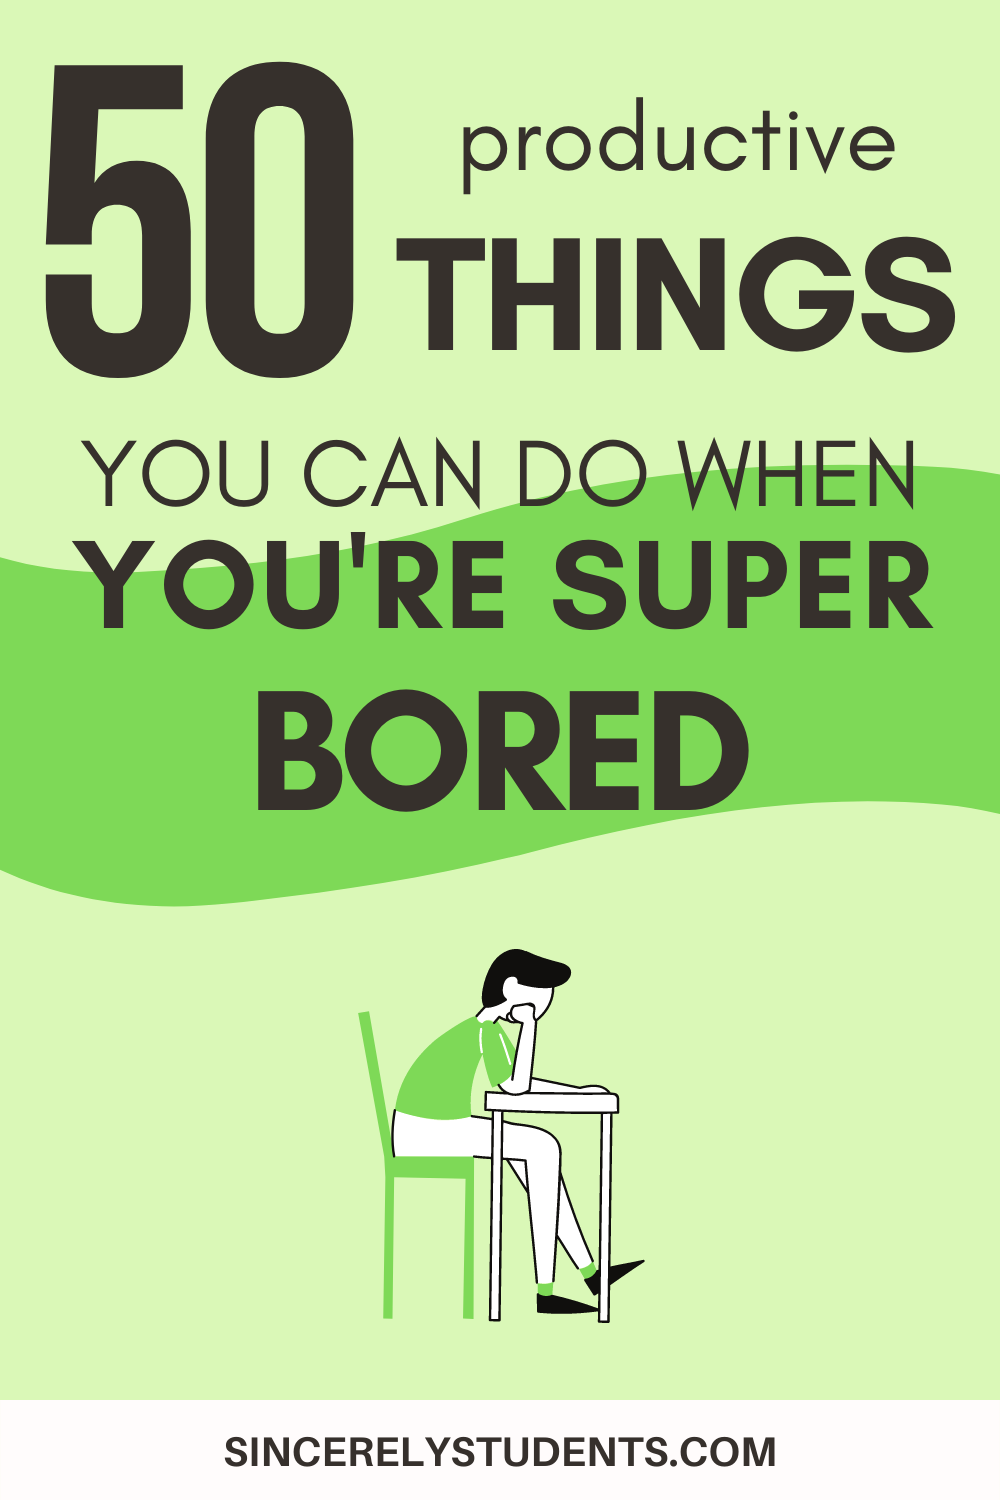 50 Highly Productive Things To Do Instead Of Scrolling Through Instagram What To Do When Bored In 2021 Productive Things To Do What To Do When Bored New Lyrics